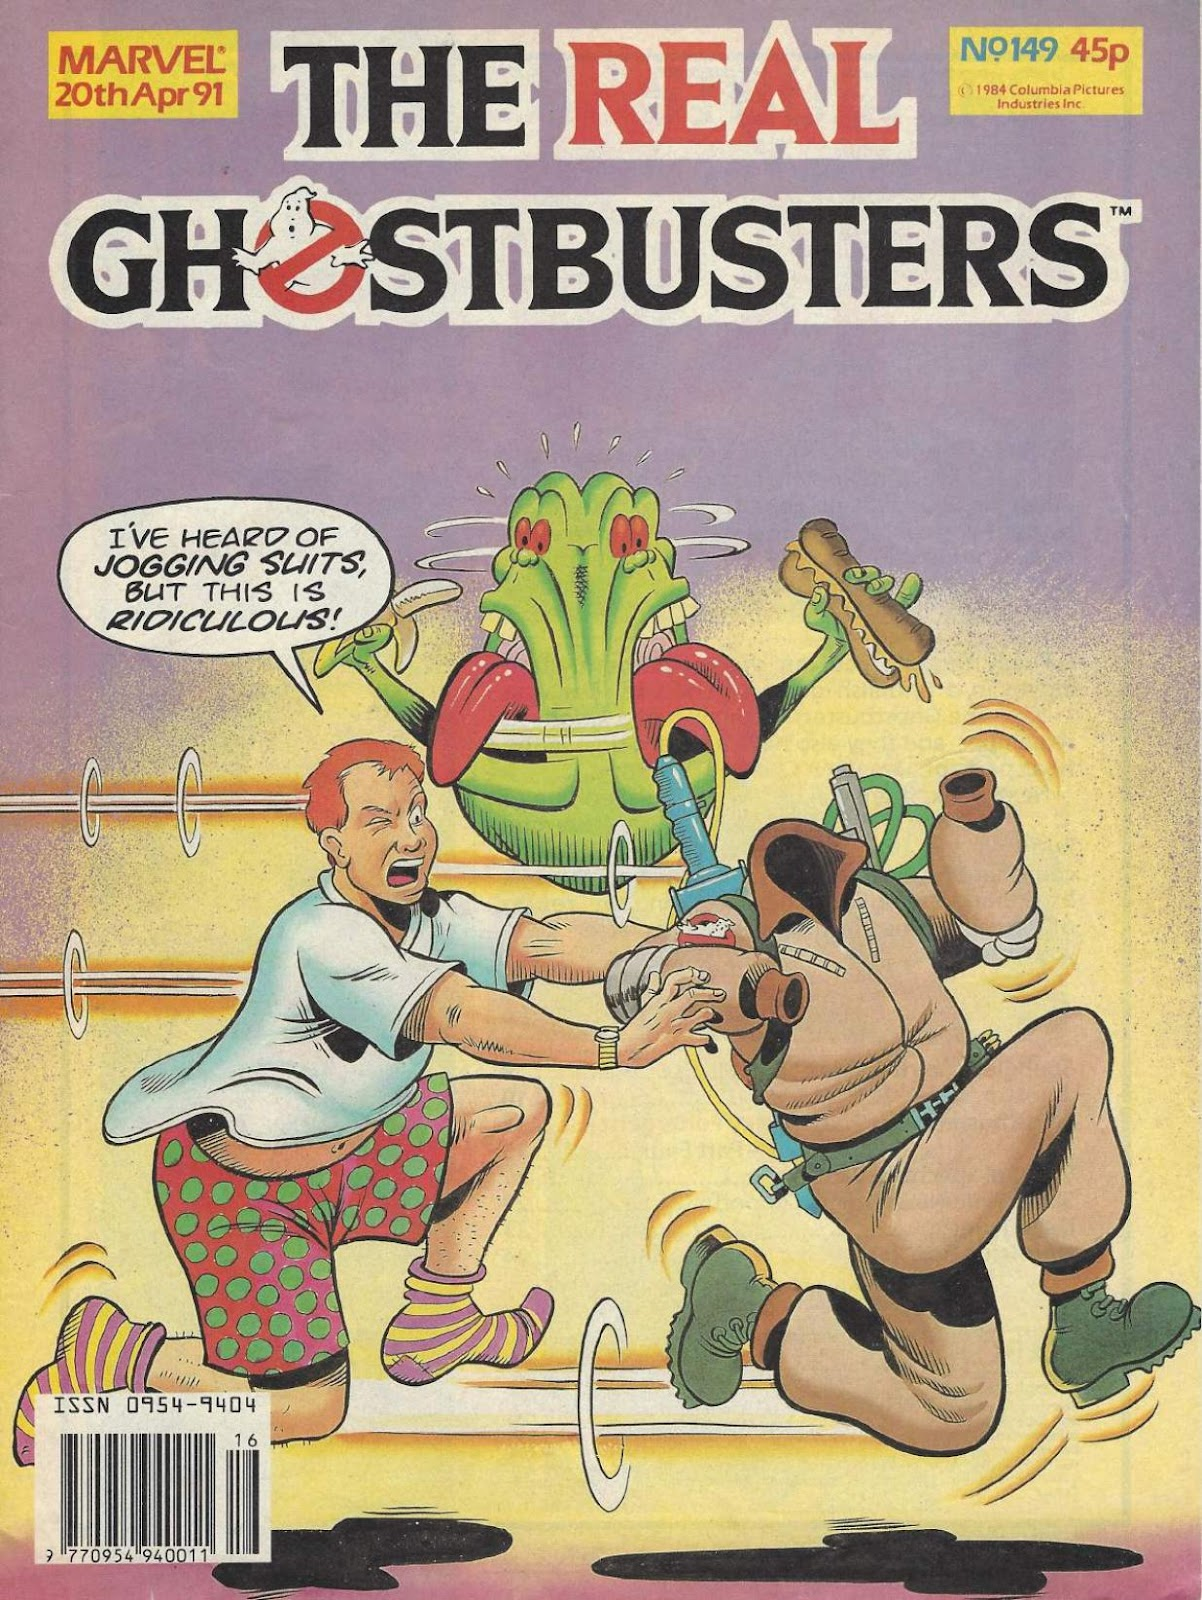 The Real Ghostbusters 149 Page 1